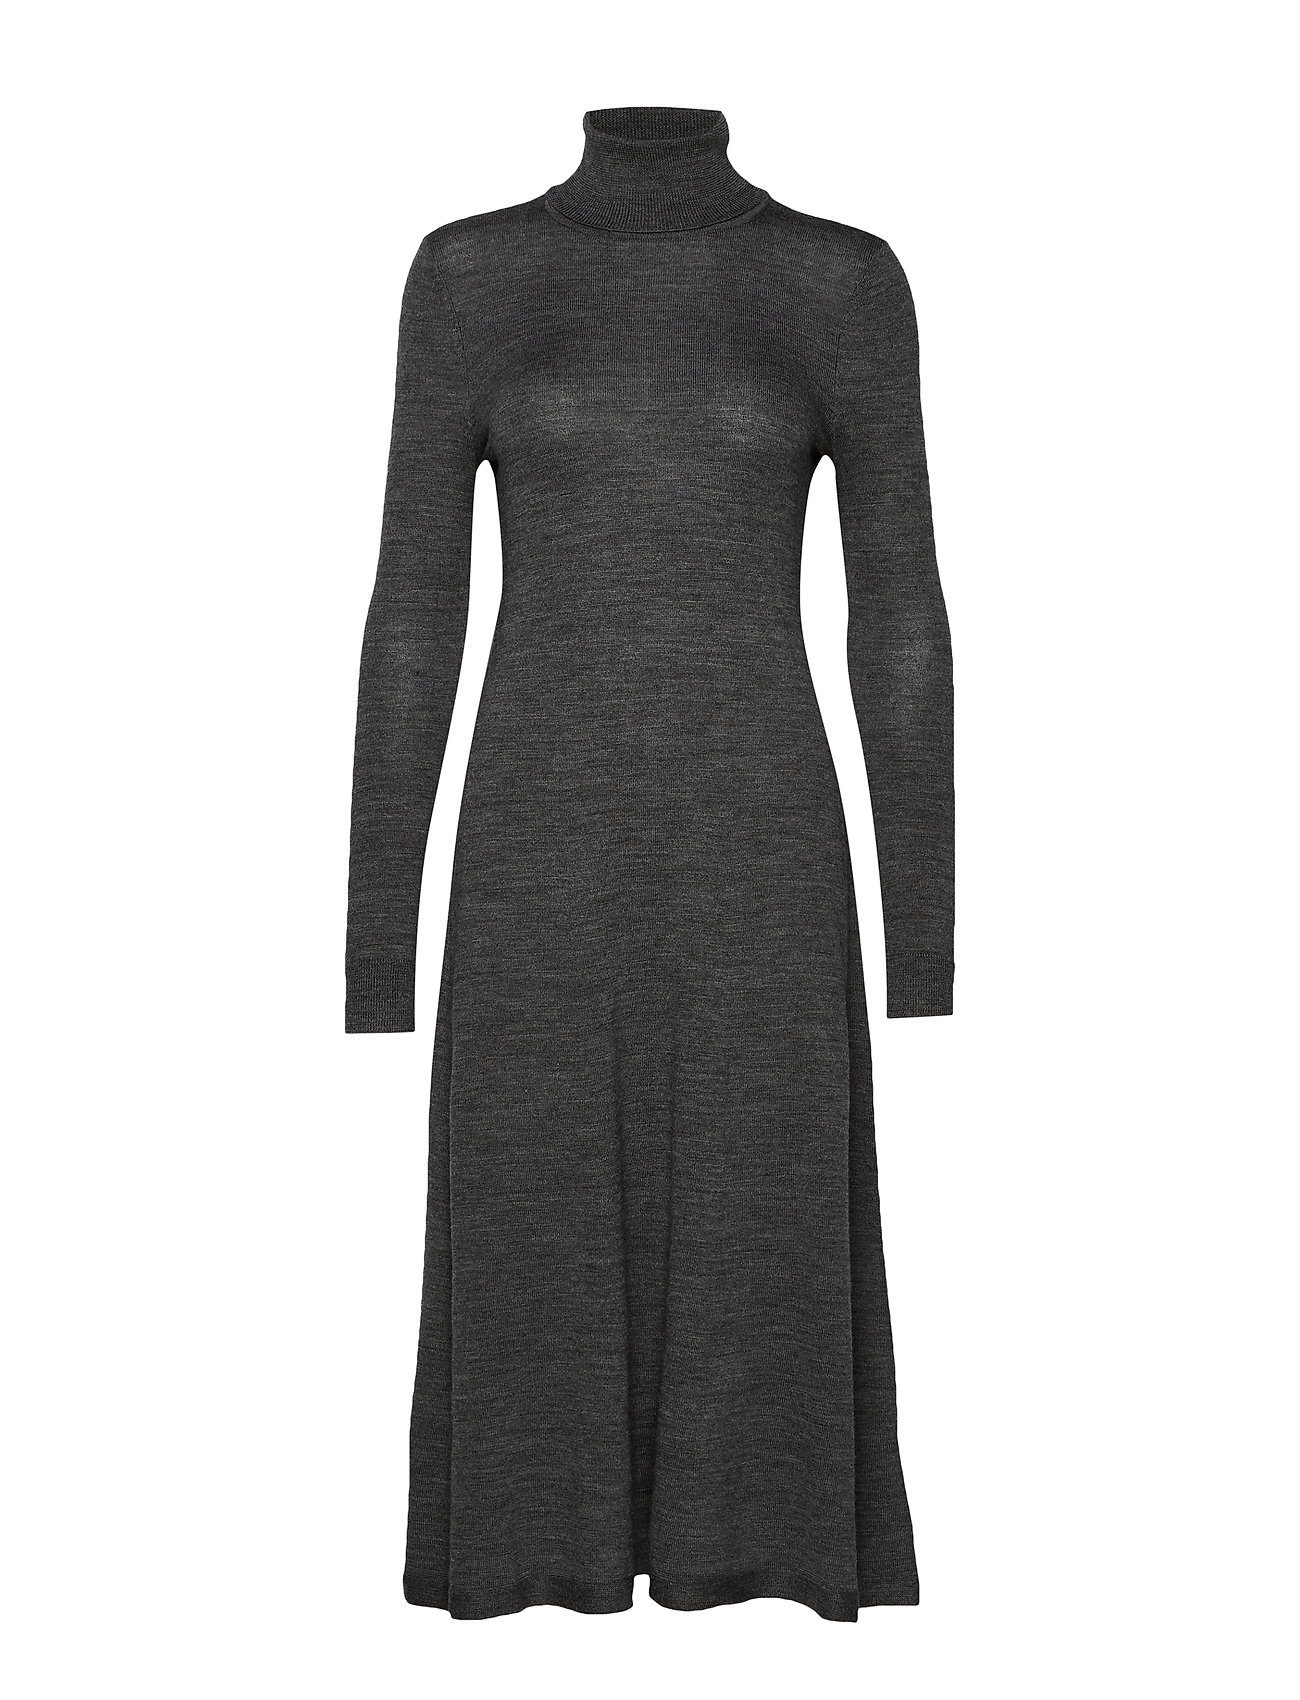 Lauren Ralph Lauren MERINO WOOL-LS TN DRESS - LEXINGTON GREY HE